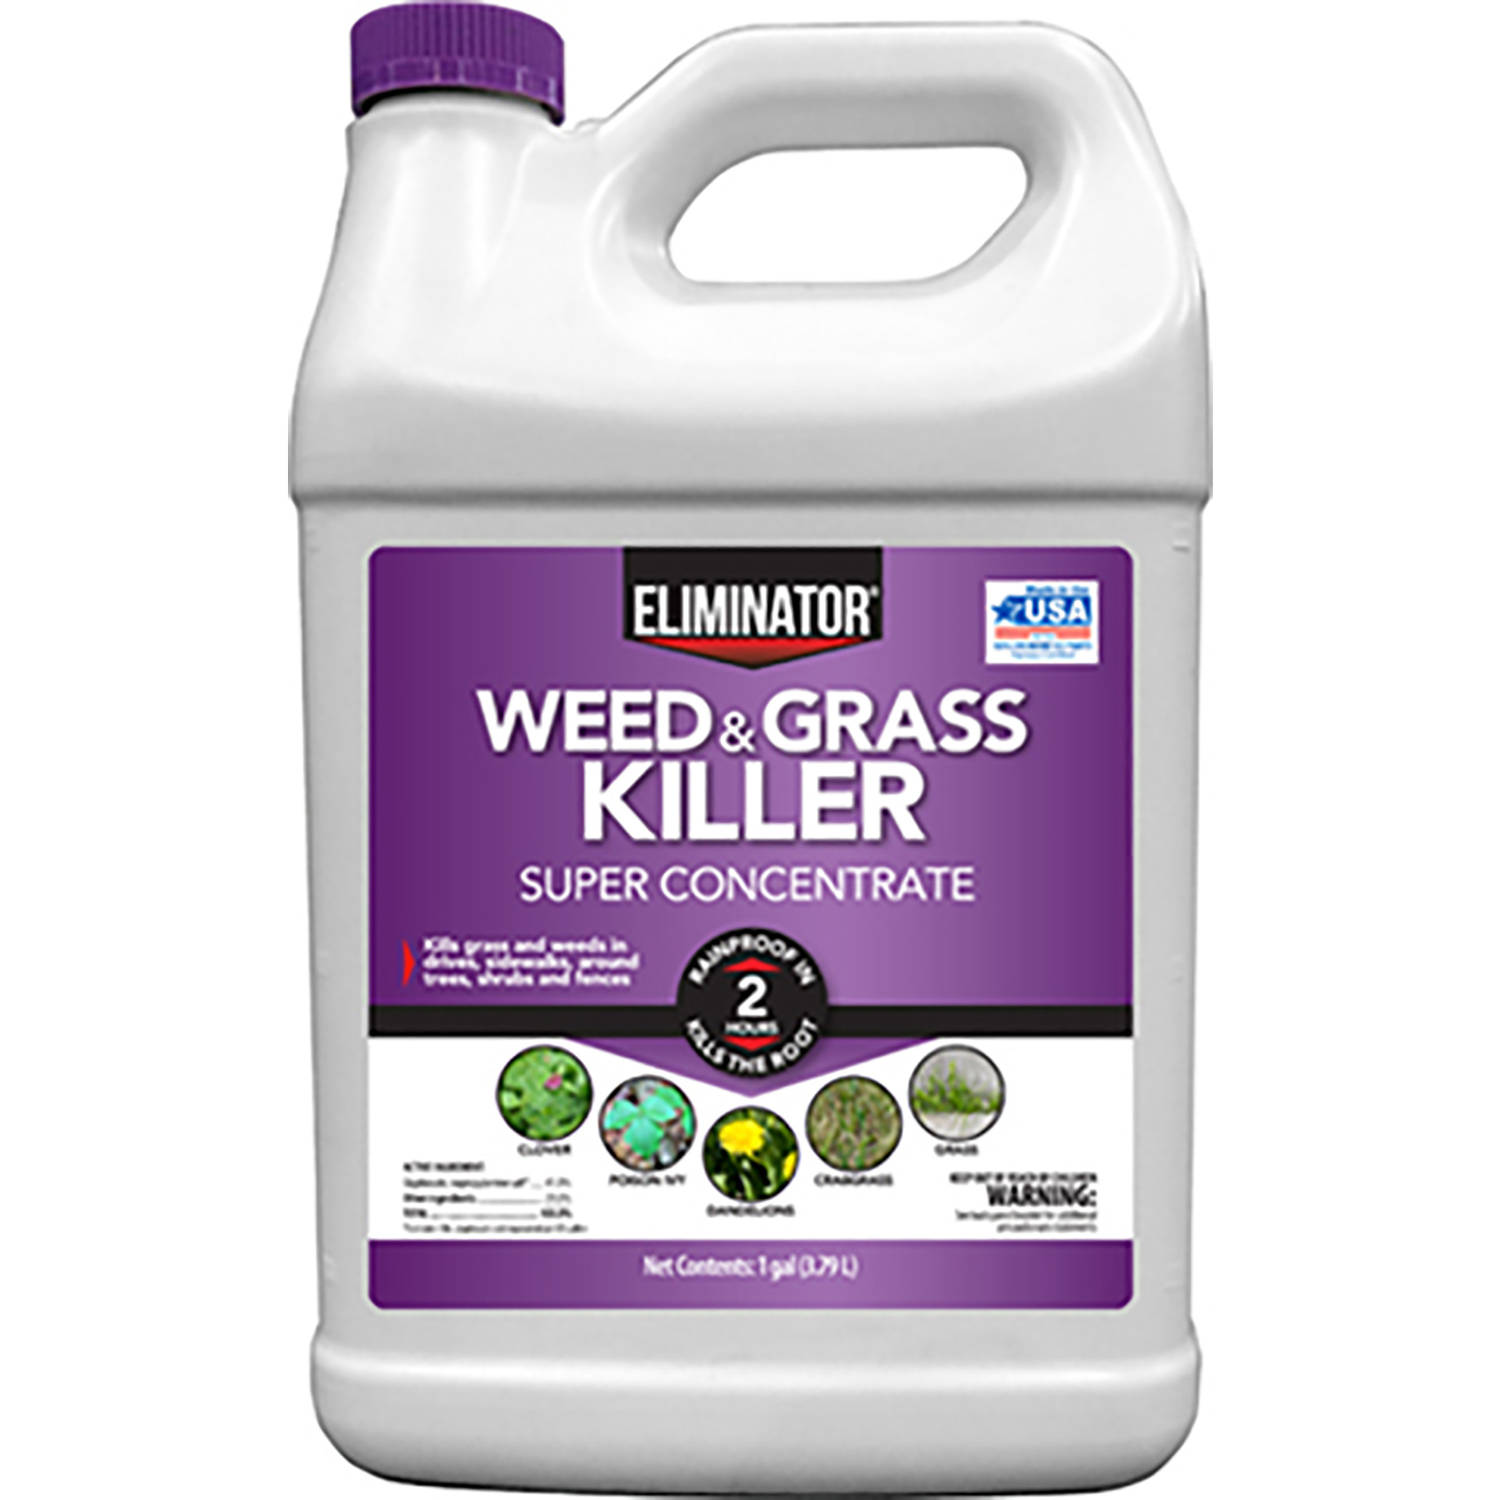 Eliminator Weed and Grass Killer Super Concentrate, 1 Gallon